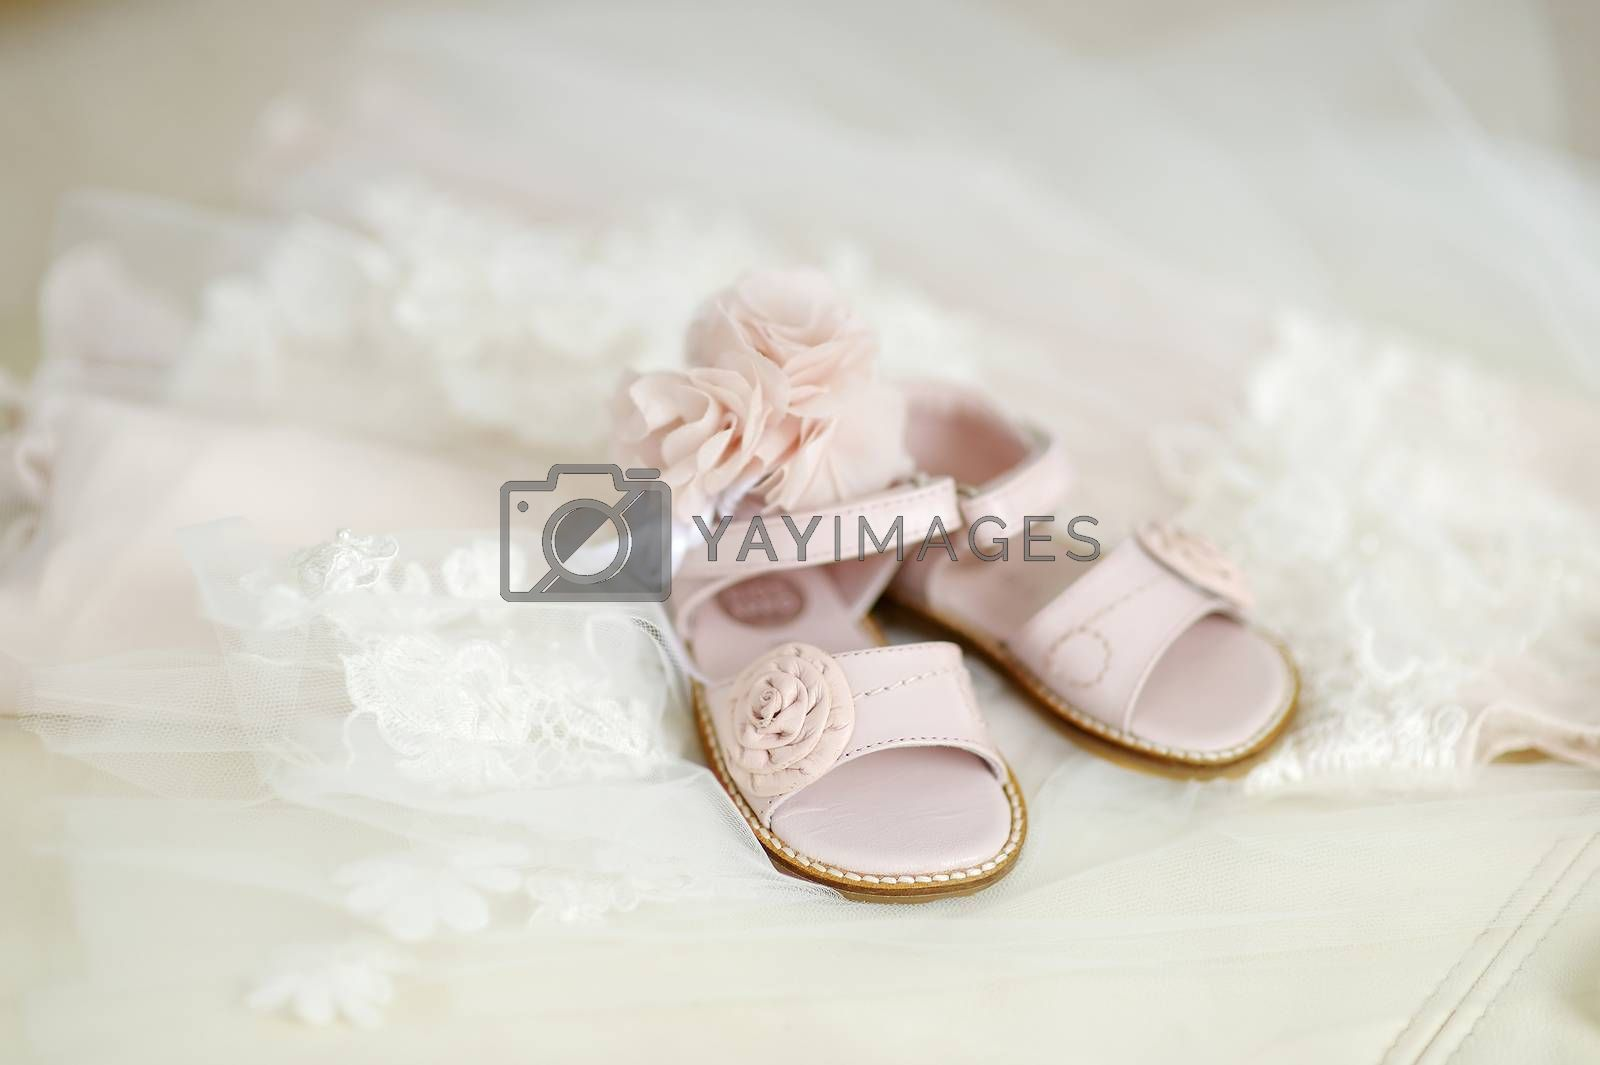 Royalty free image of Baby girl christening shoes by maximkabb